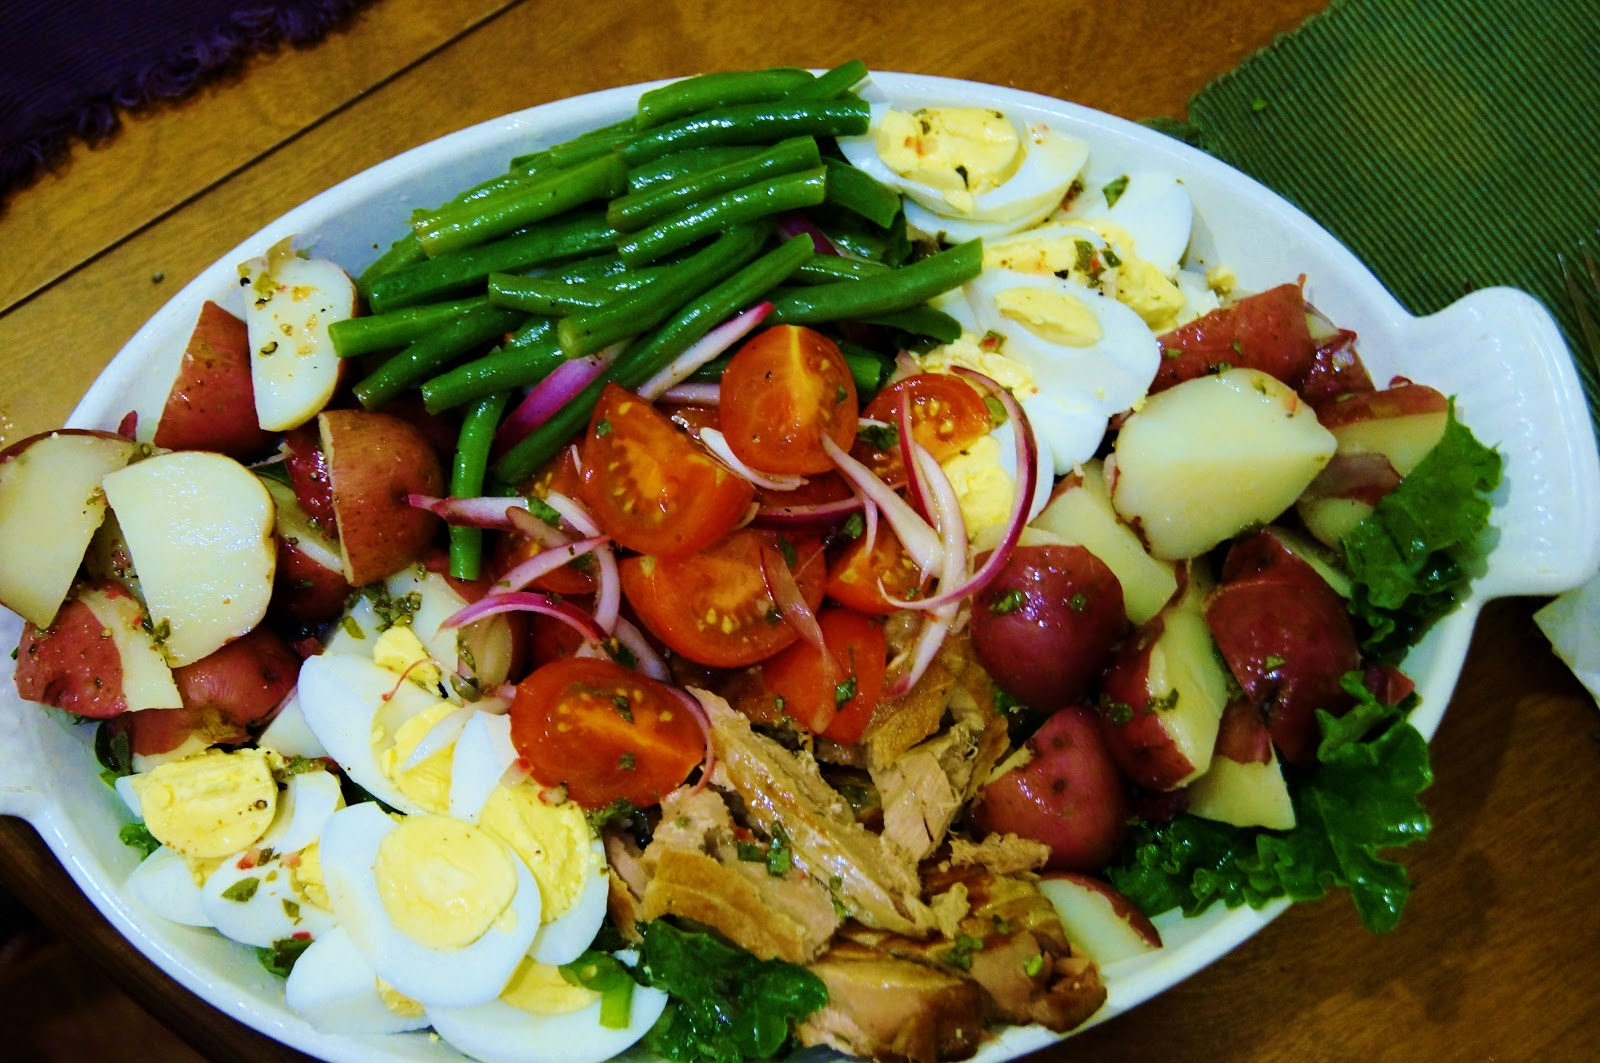 ... salad is not your typical light fare salad nicoise is a mixture of